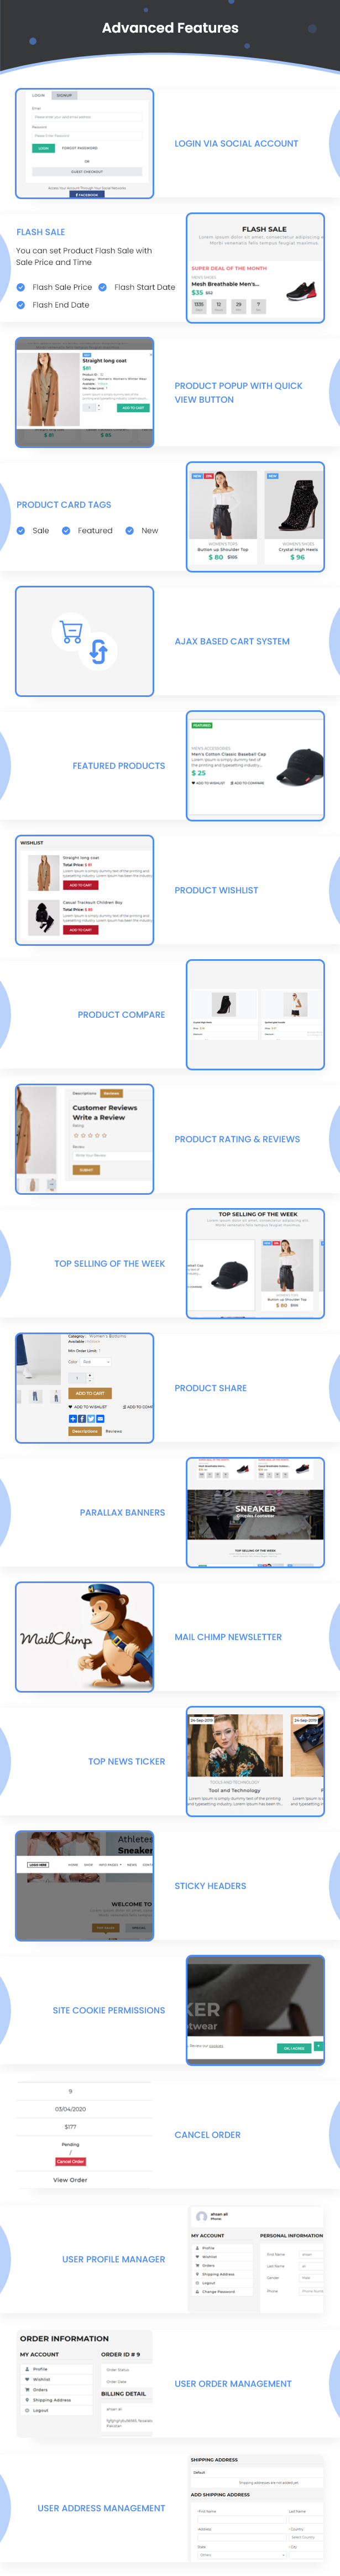 Best Ecommerce Solution with Delivery App For Grocery, Food, Pharmacy, Any Stores / Laravel + IONIC5 - 33